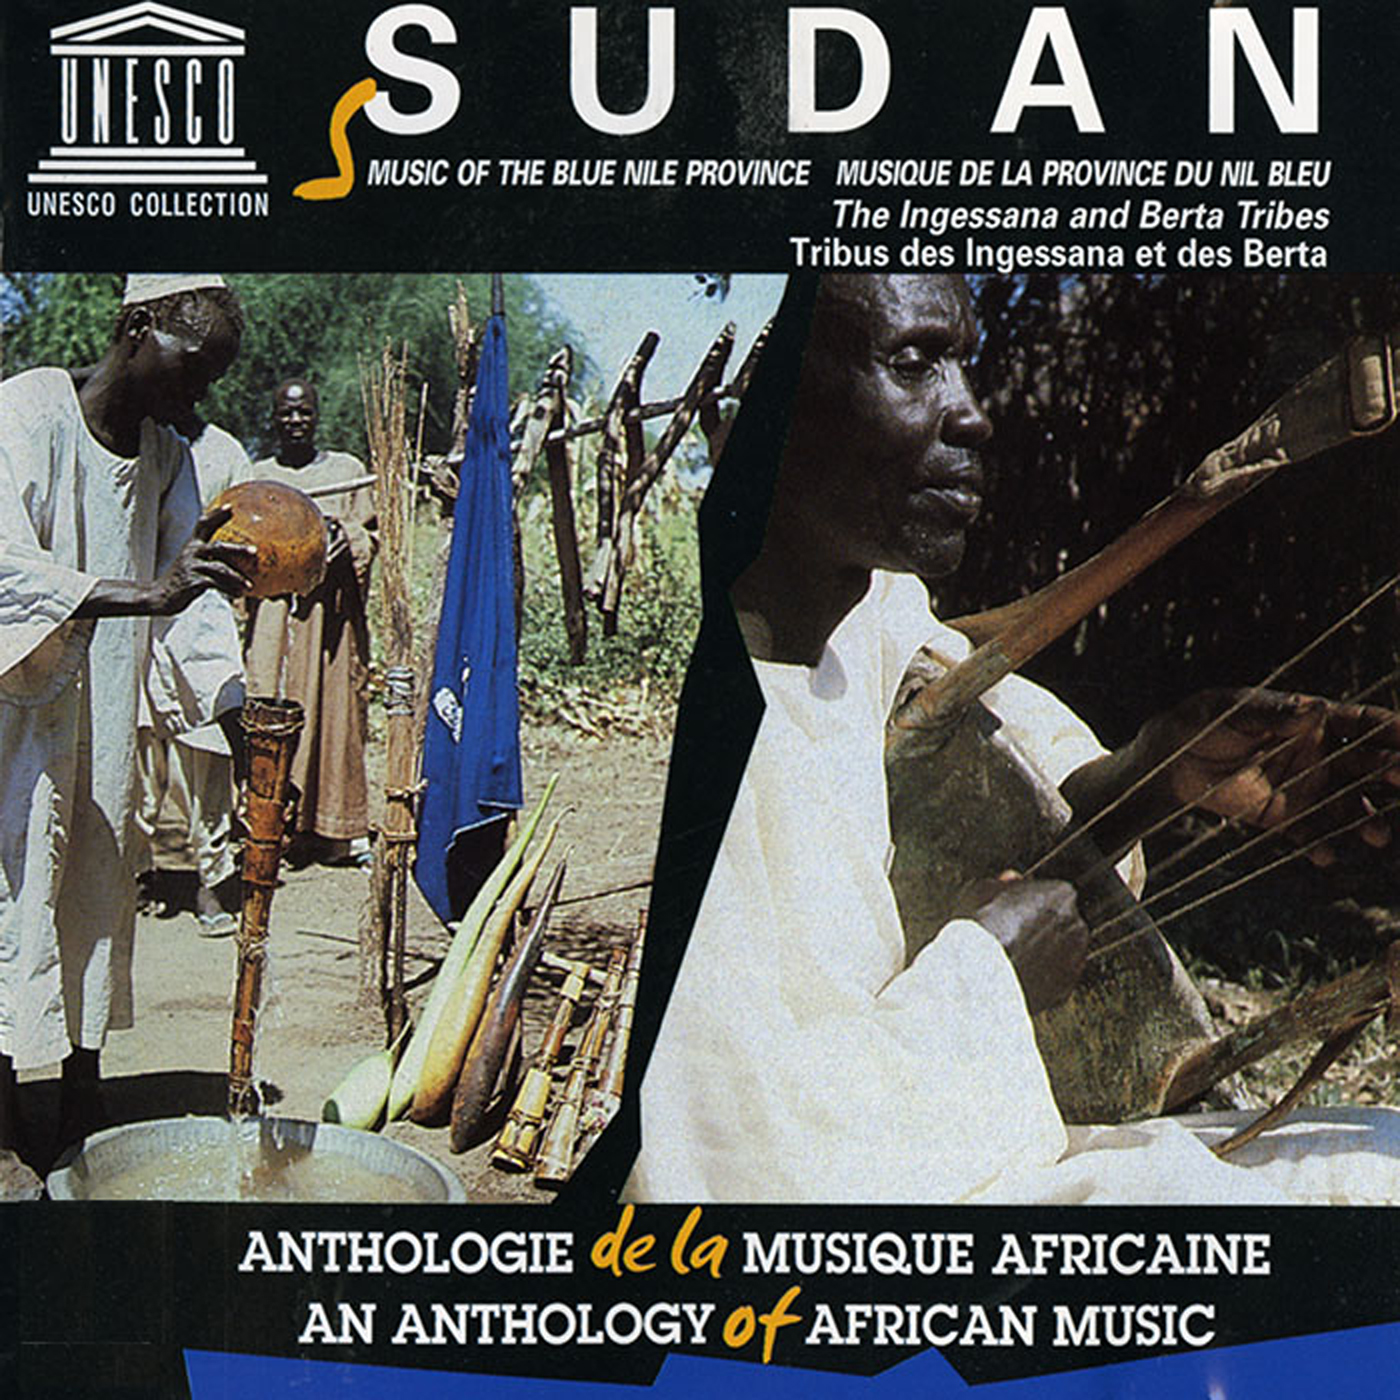 Sudan Music Of The Blue Nile Province The Ingessana And Berta Tribes Smithsonian Folkways Recordings